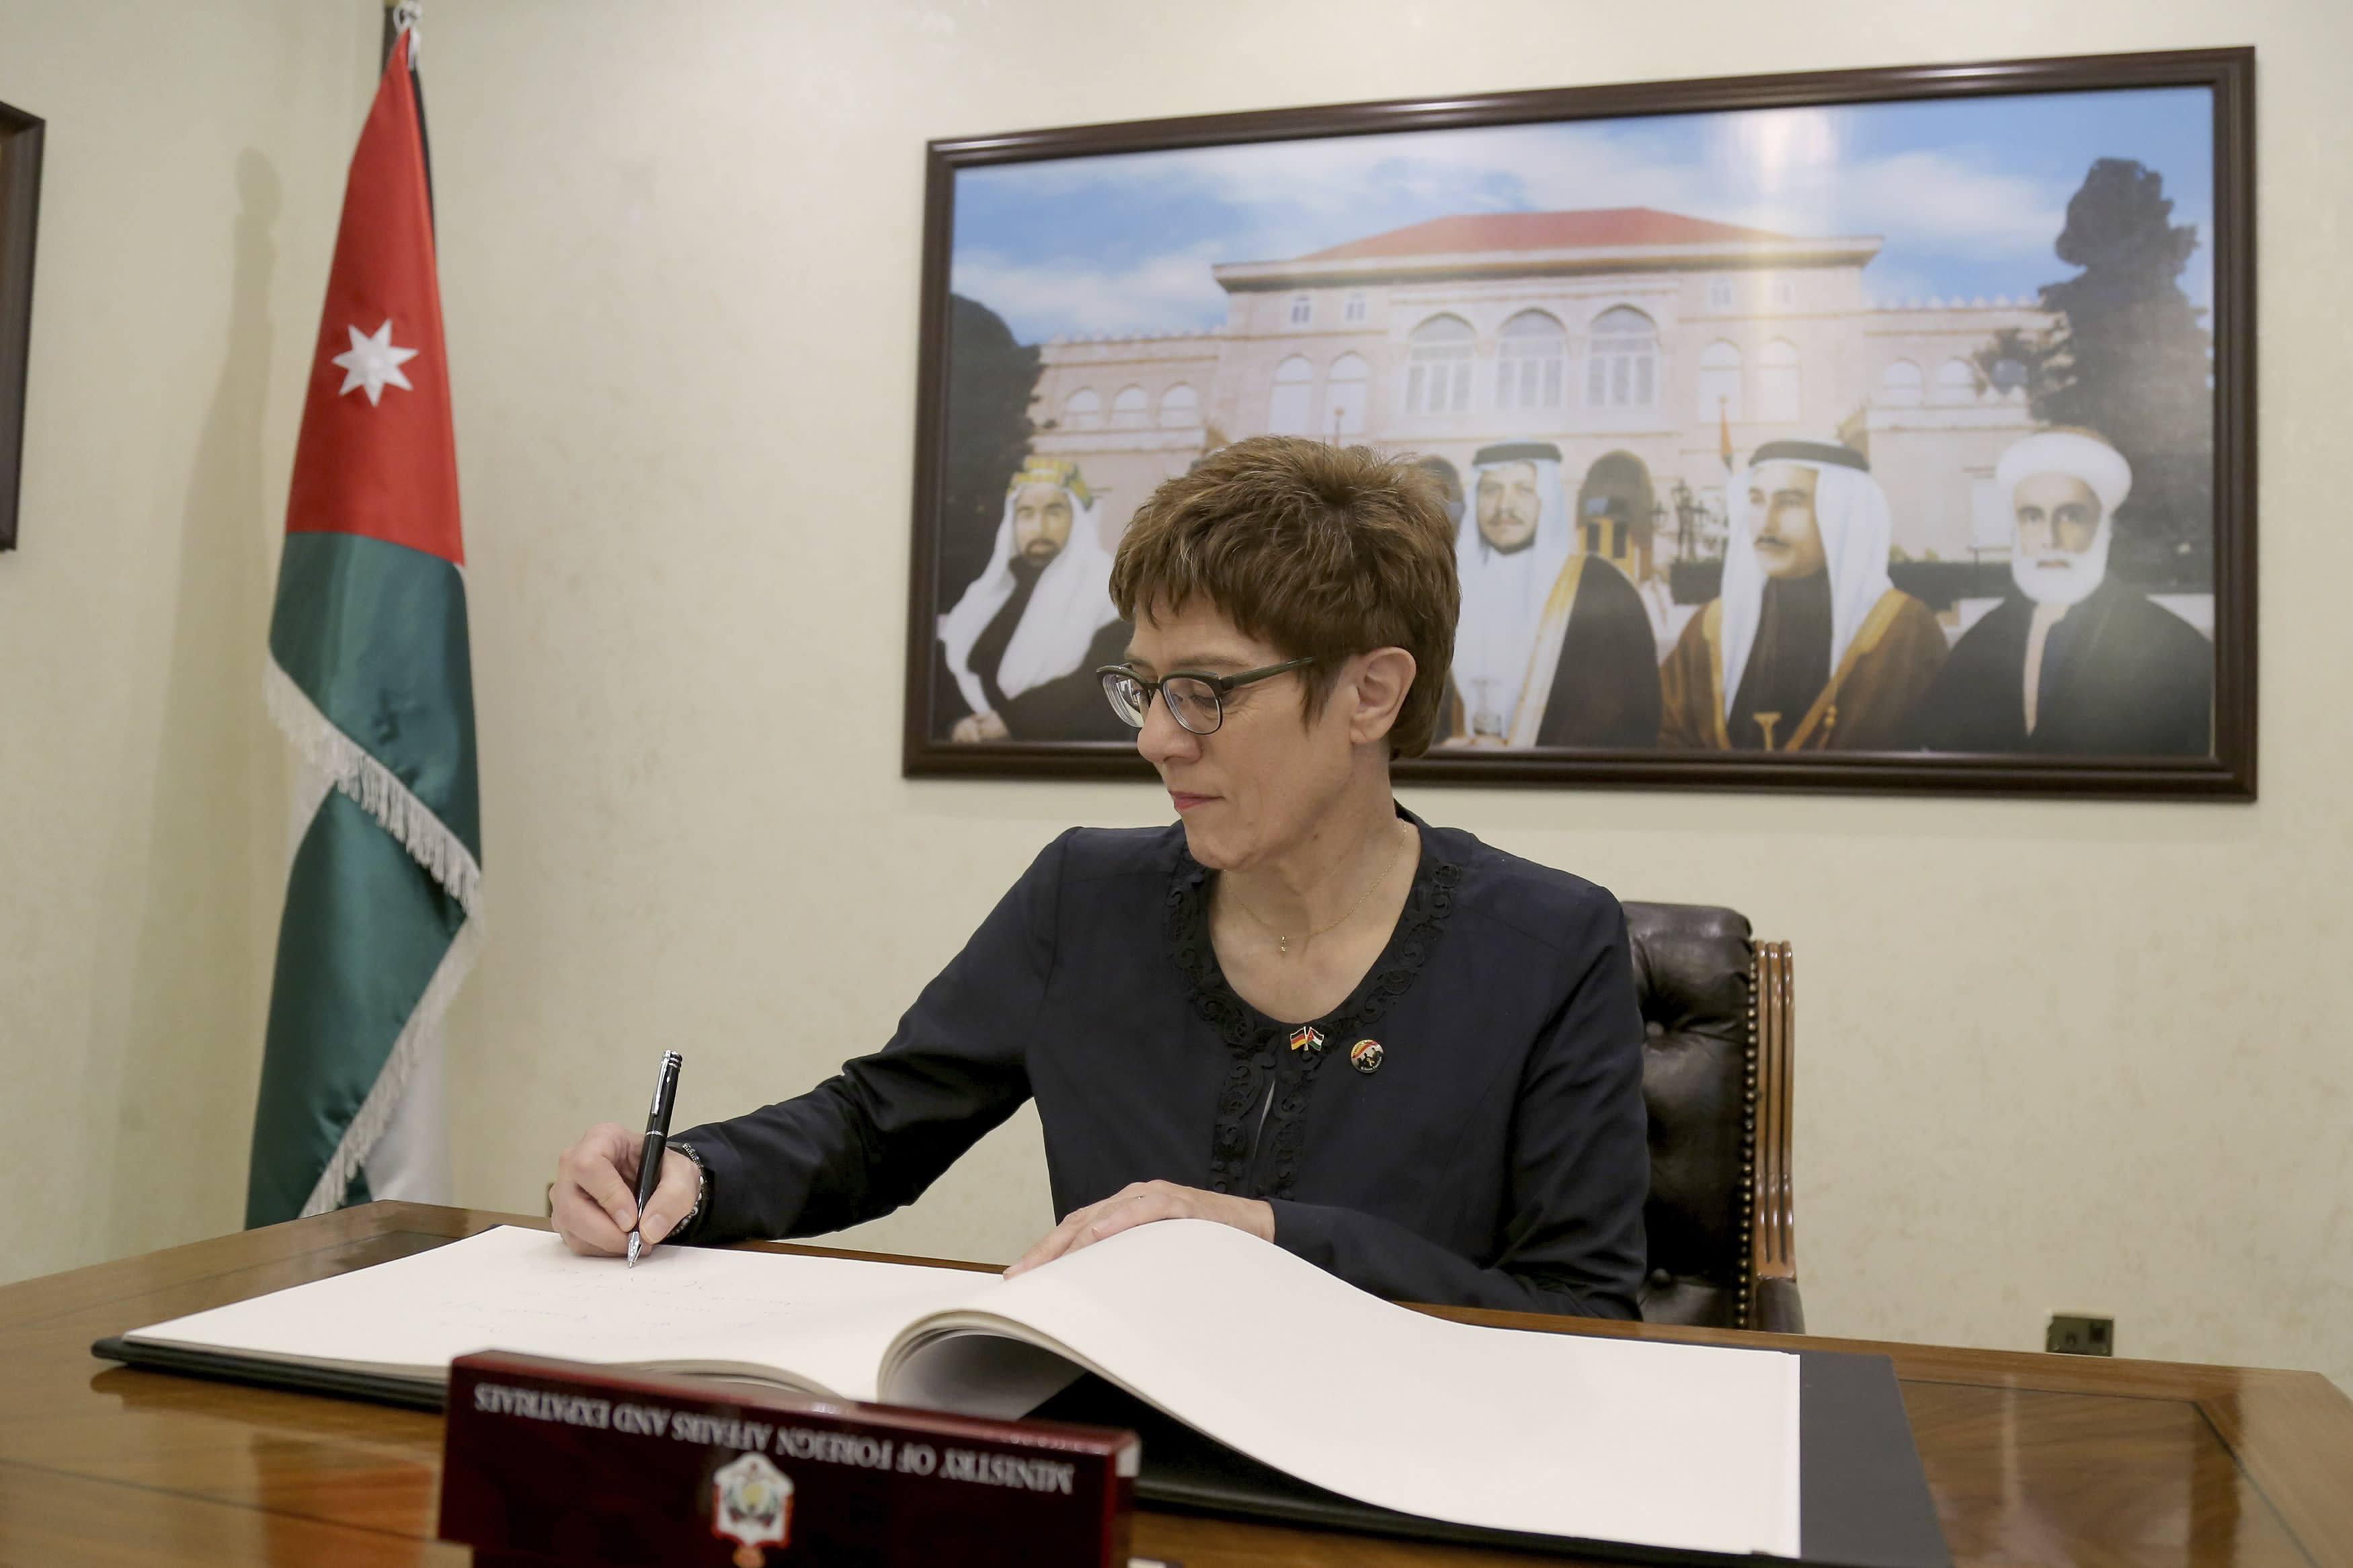 German Defense Minister Annegret Kramp-Karrenbauer signs the guestbook of the Foreign Minister of Jordan, in Amman, Jordan, Monday, August 19, 2019. It was Kramp-Karrenbauer's first trip abroad as Defense Minister. (AP Photo/Raad Adayleh)